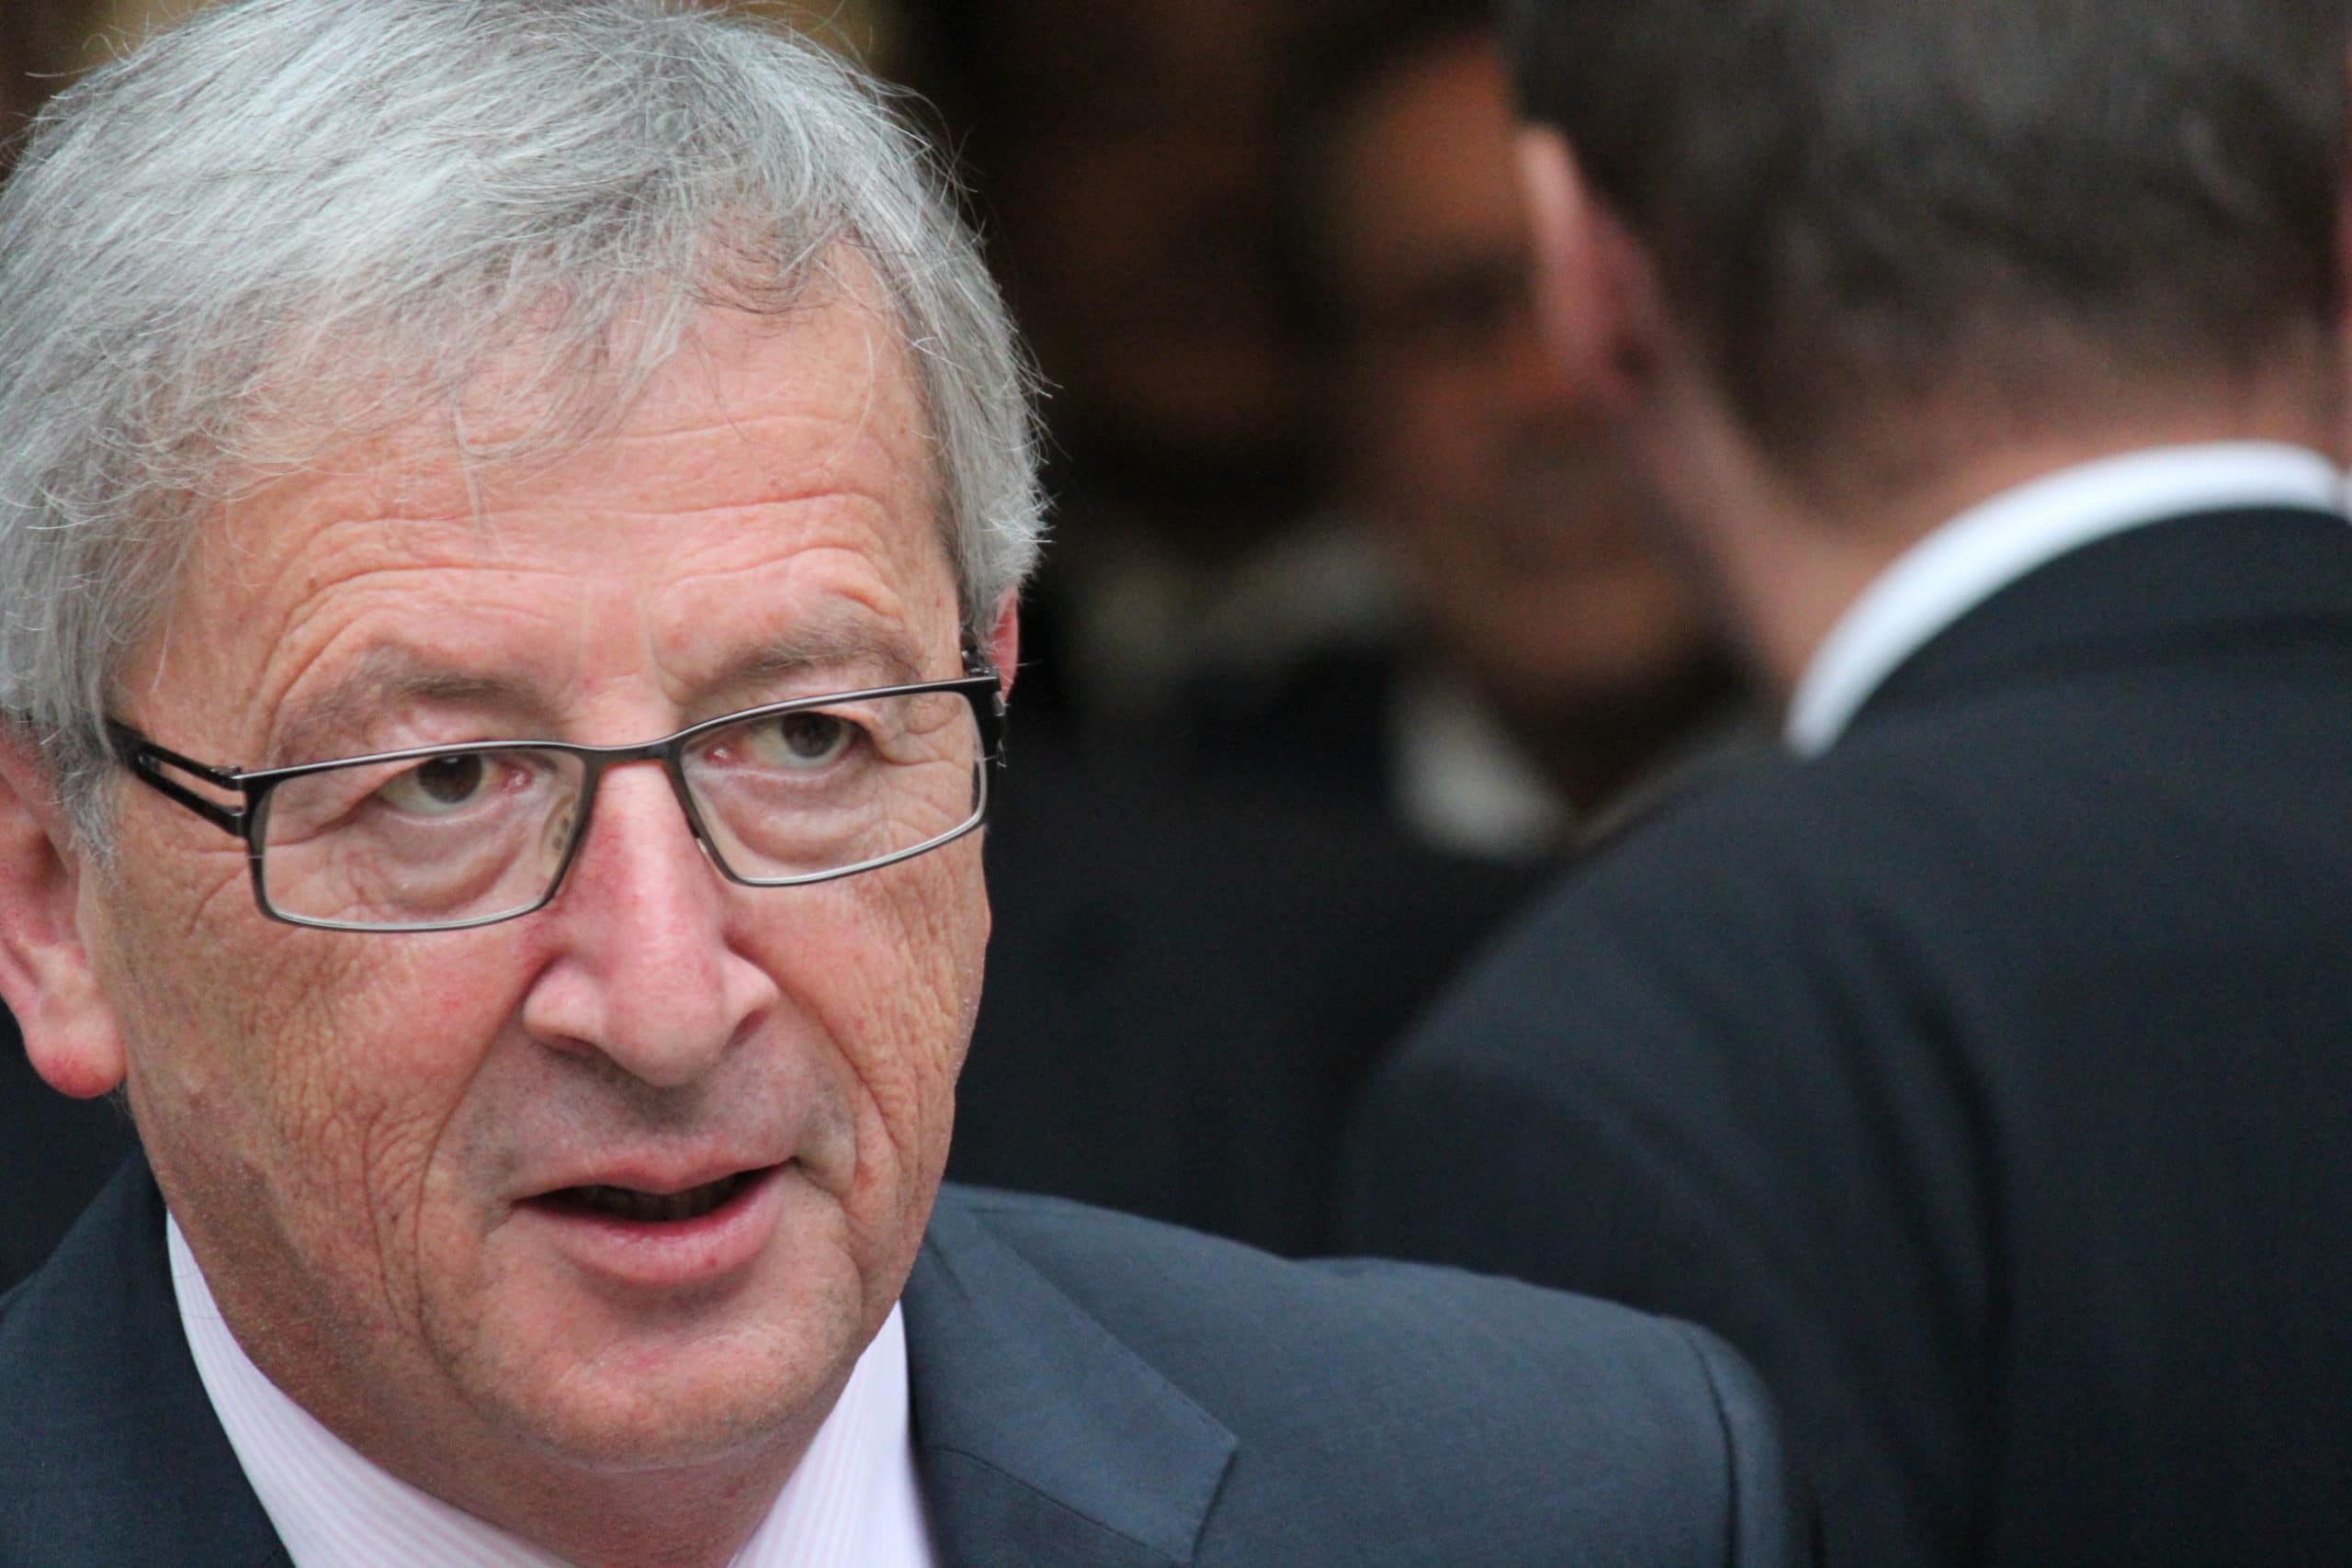 Joint letter to President Juncker concerning potential withdrawal of the Circular Economy Package